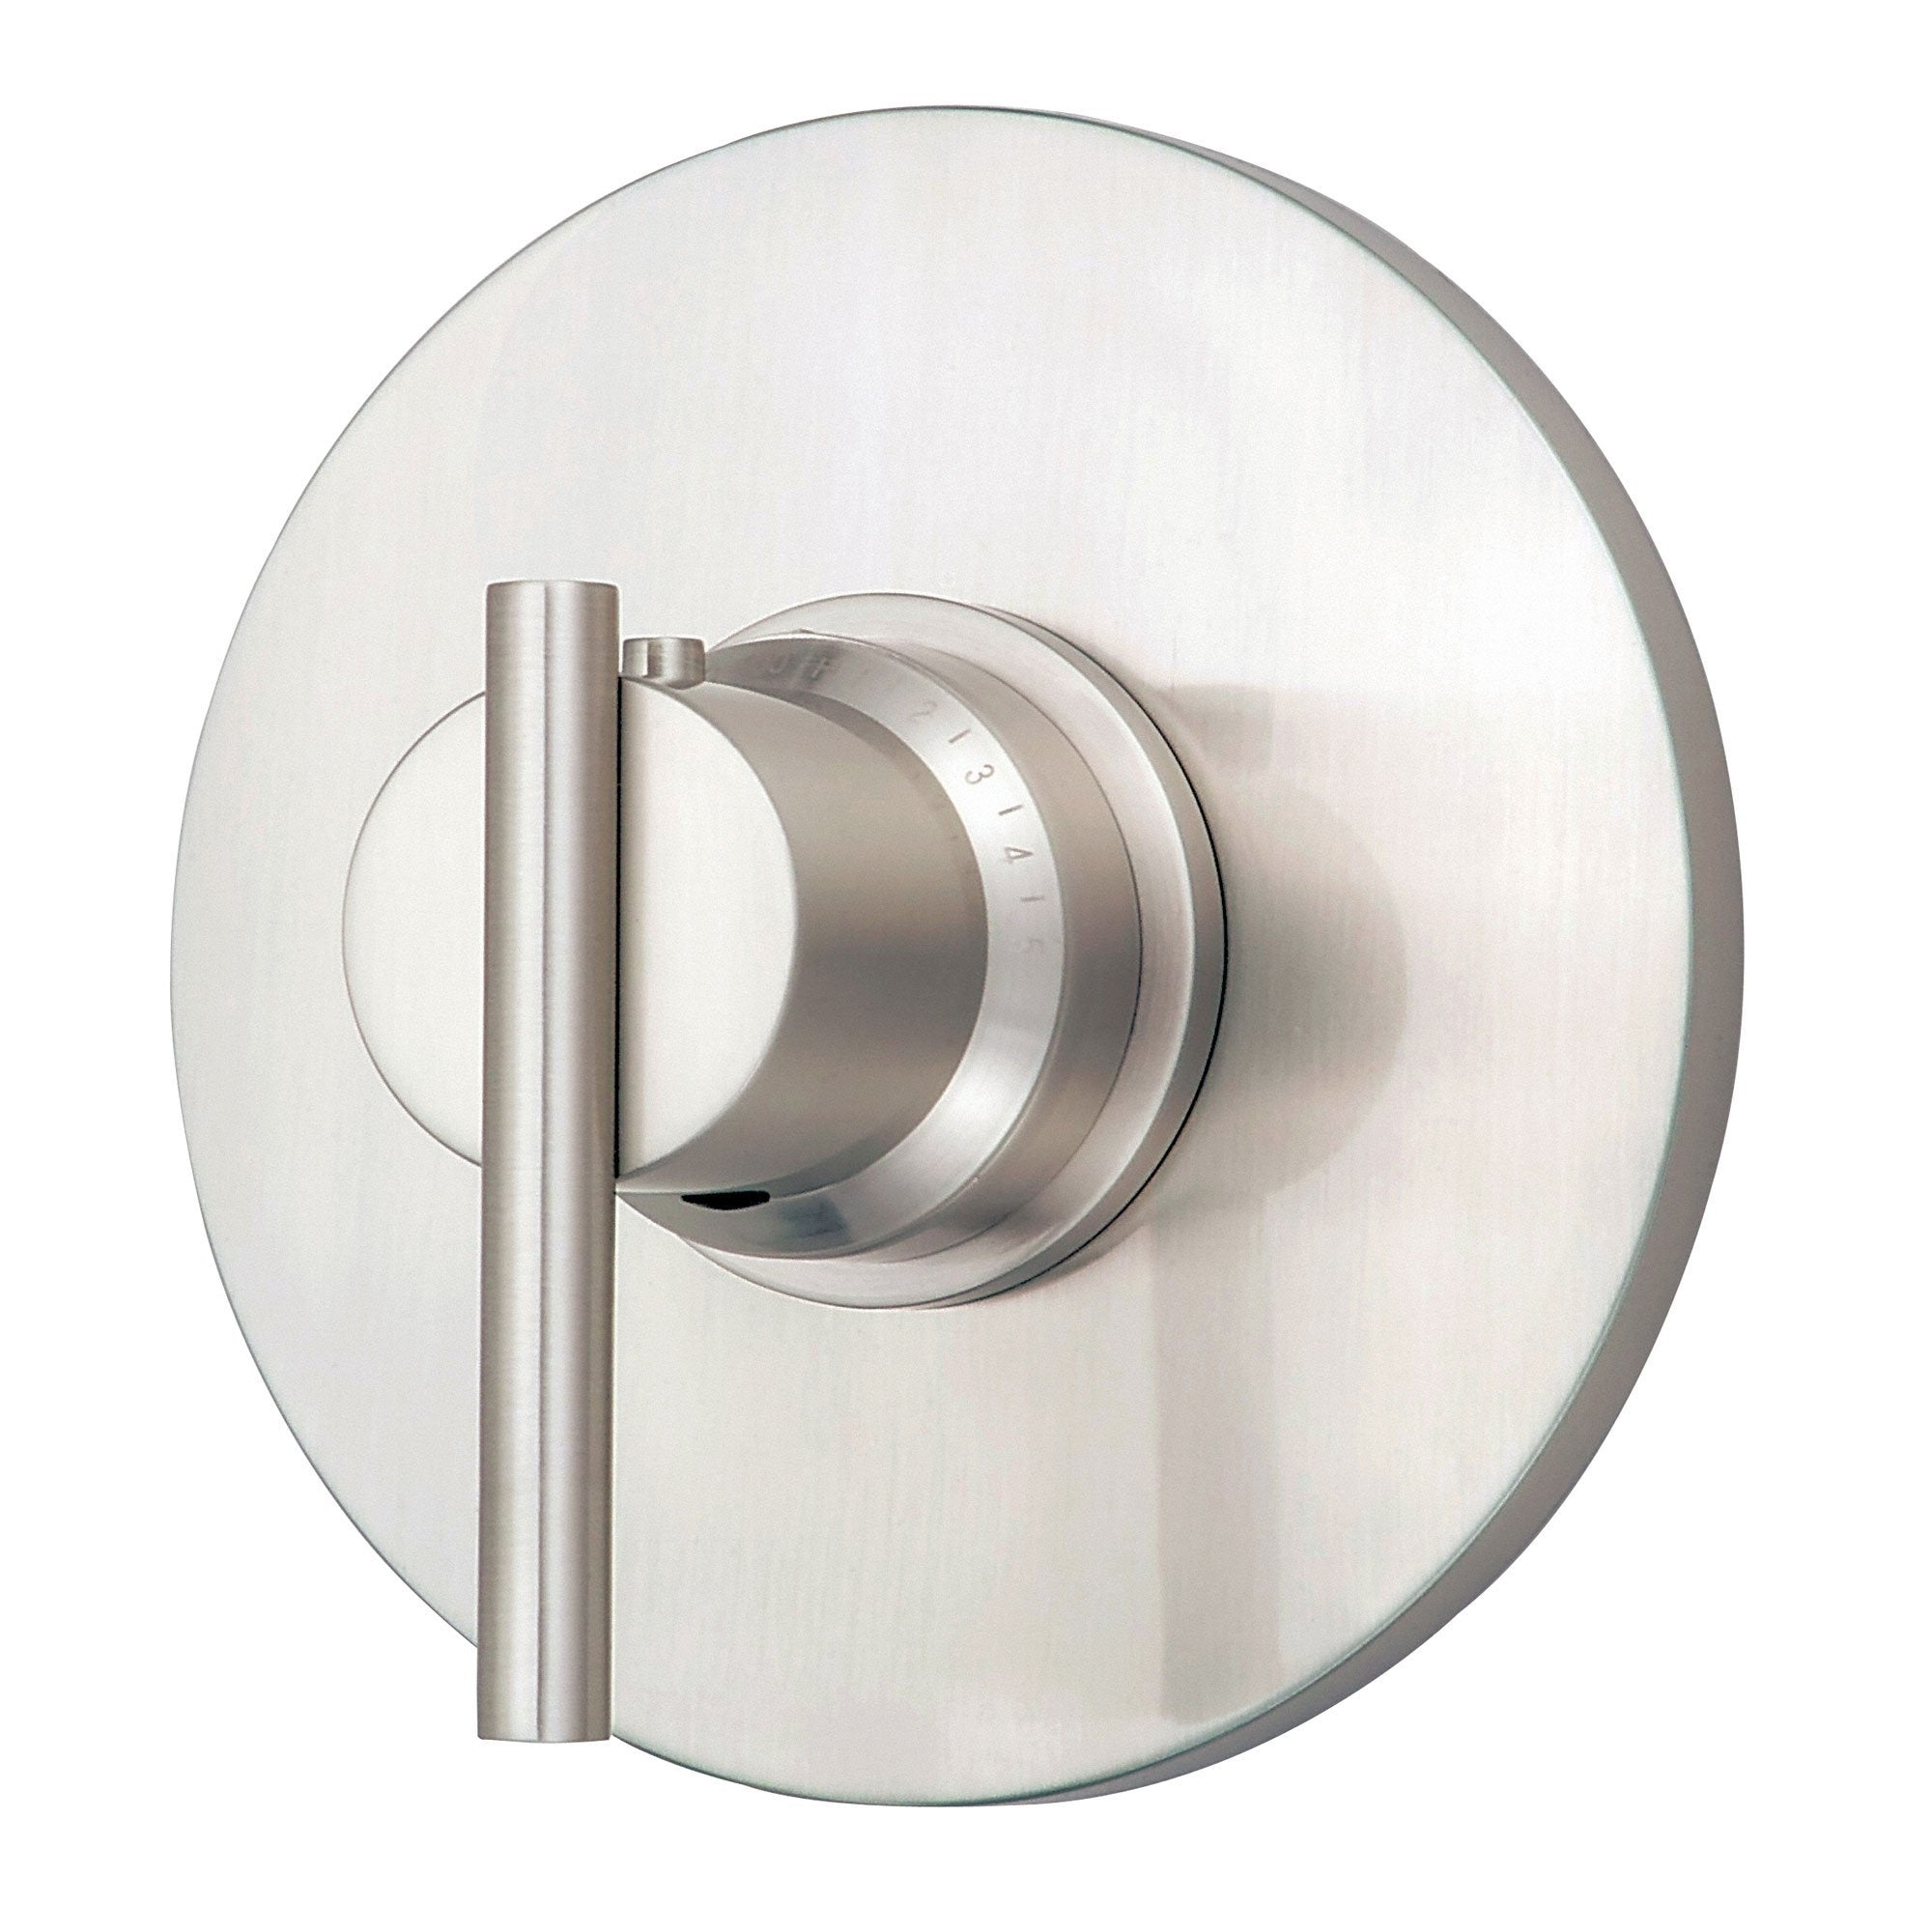 "Danze Parma Brushed Nickel 3/4"" High-Volume Thermostatic Shower Control INCLUDES Rough-in Valve"